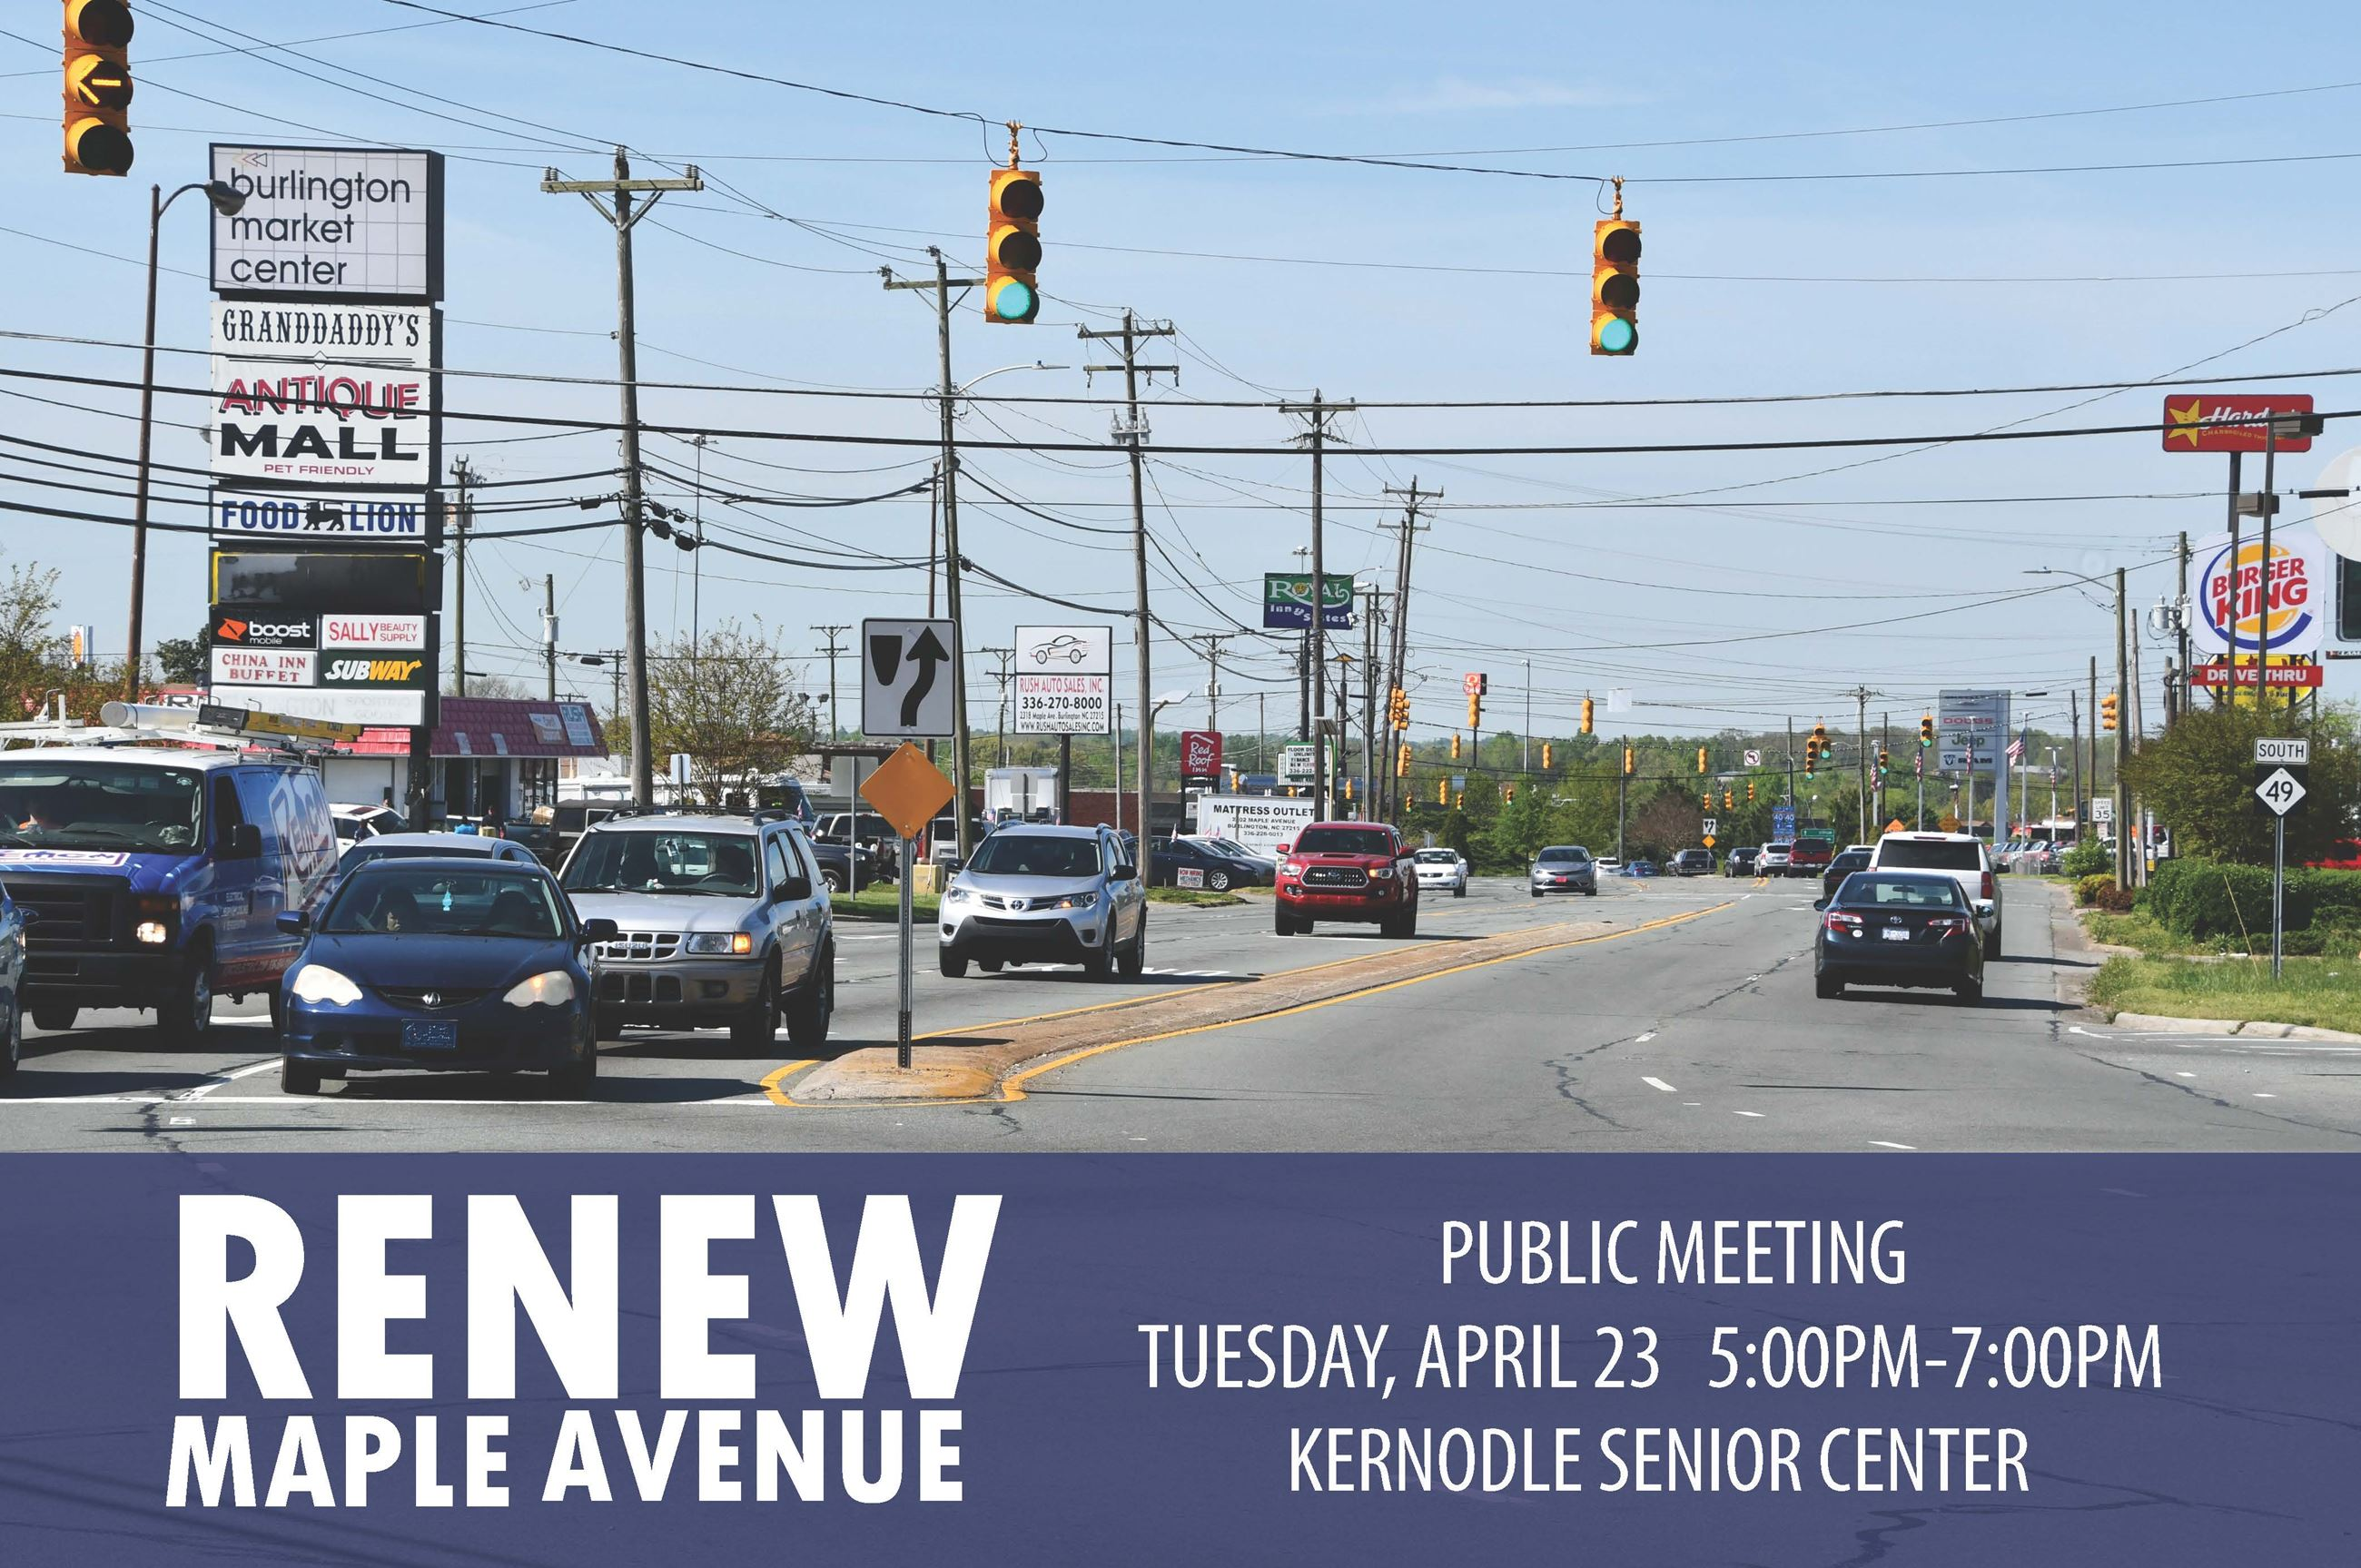 Renew Maple Avenue Newsflash